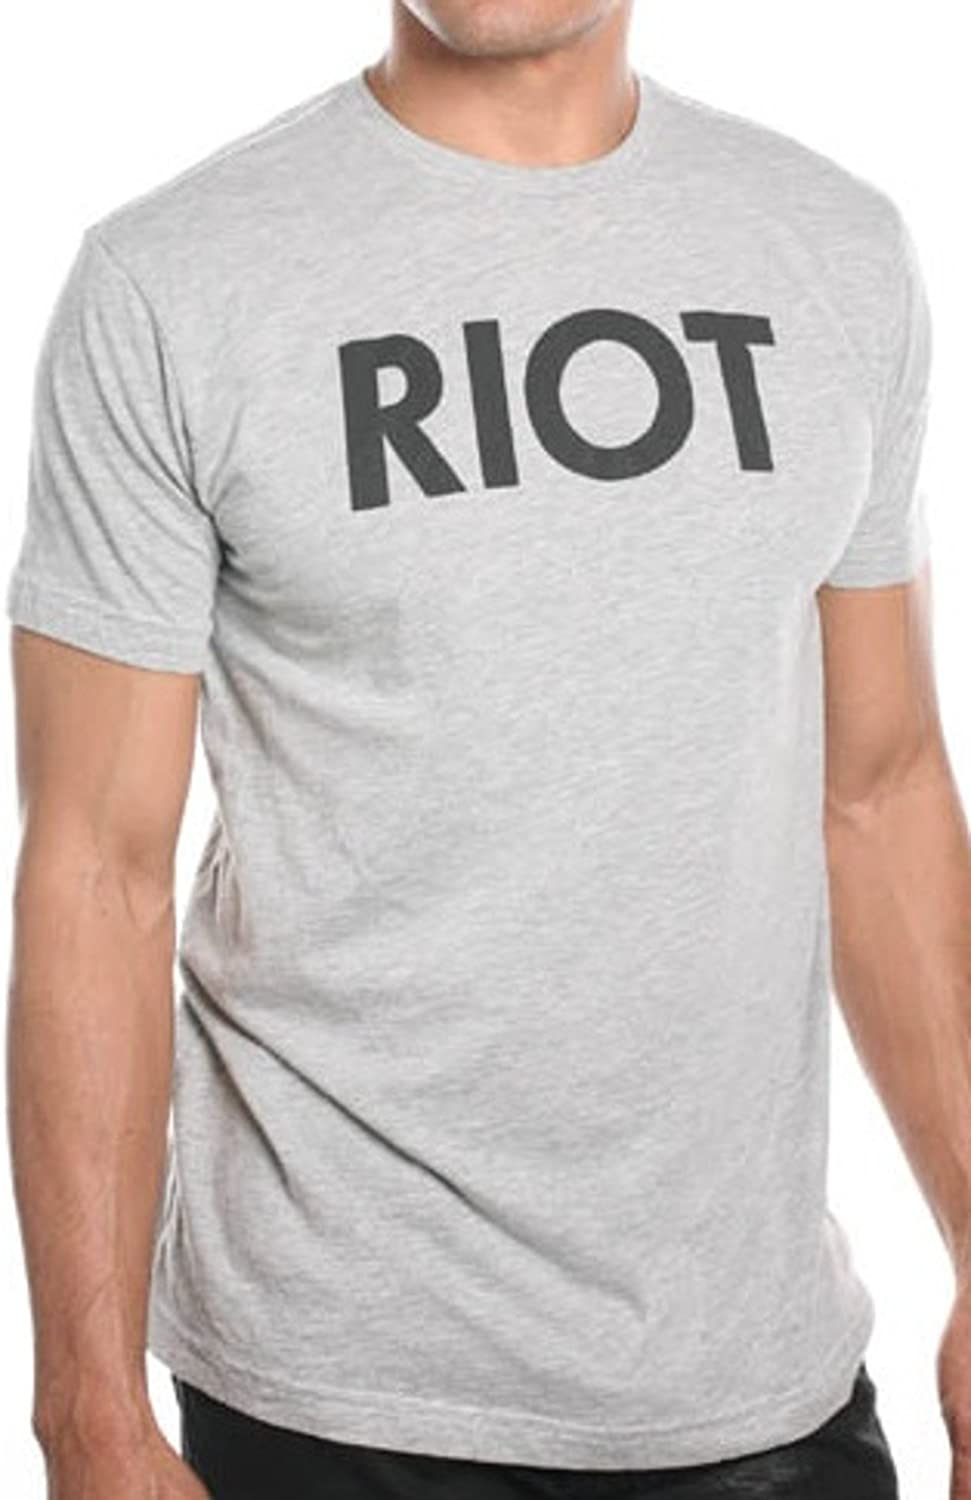 RIOT  T-Shirt Its Always Sunny In Philadelphia Funny Gift